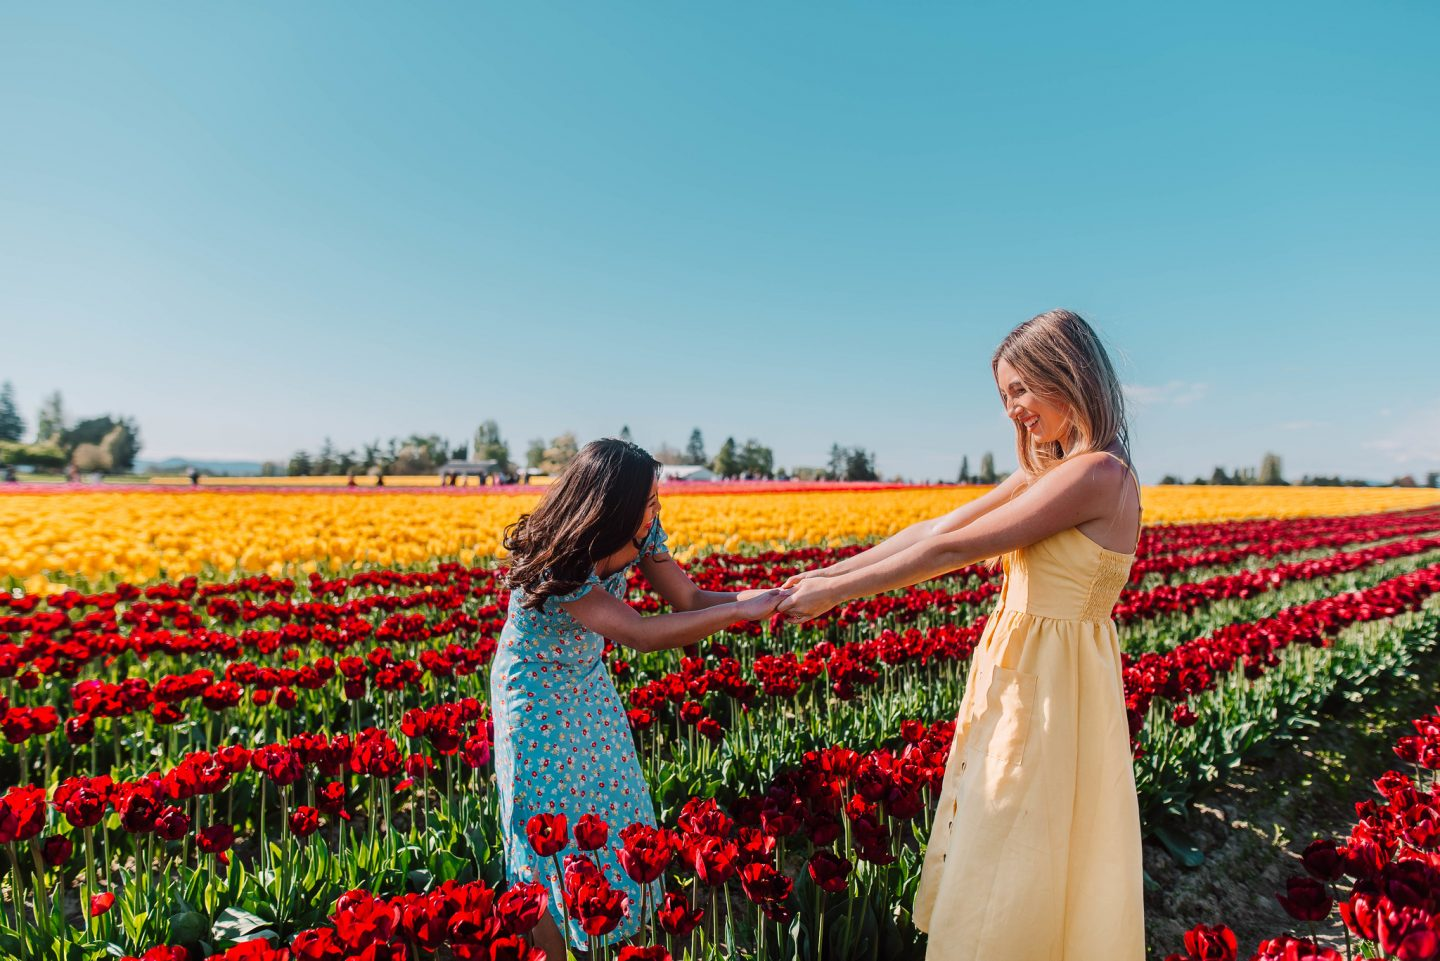 hold hands in the flower field